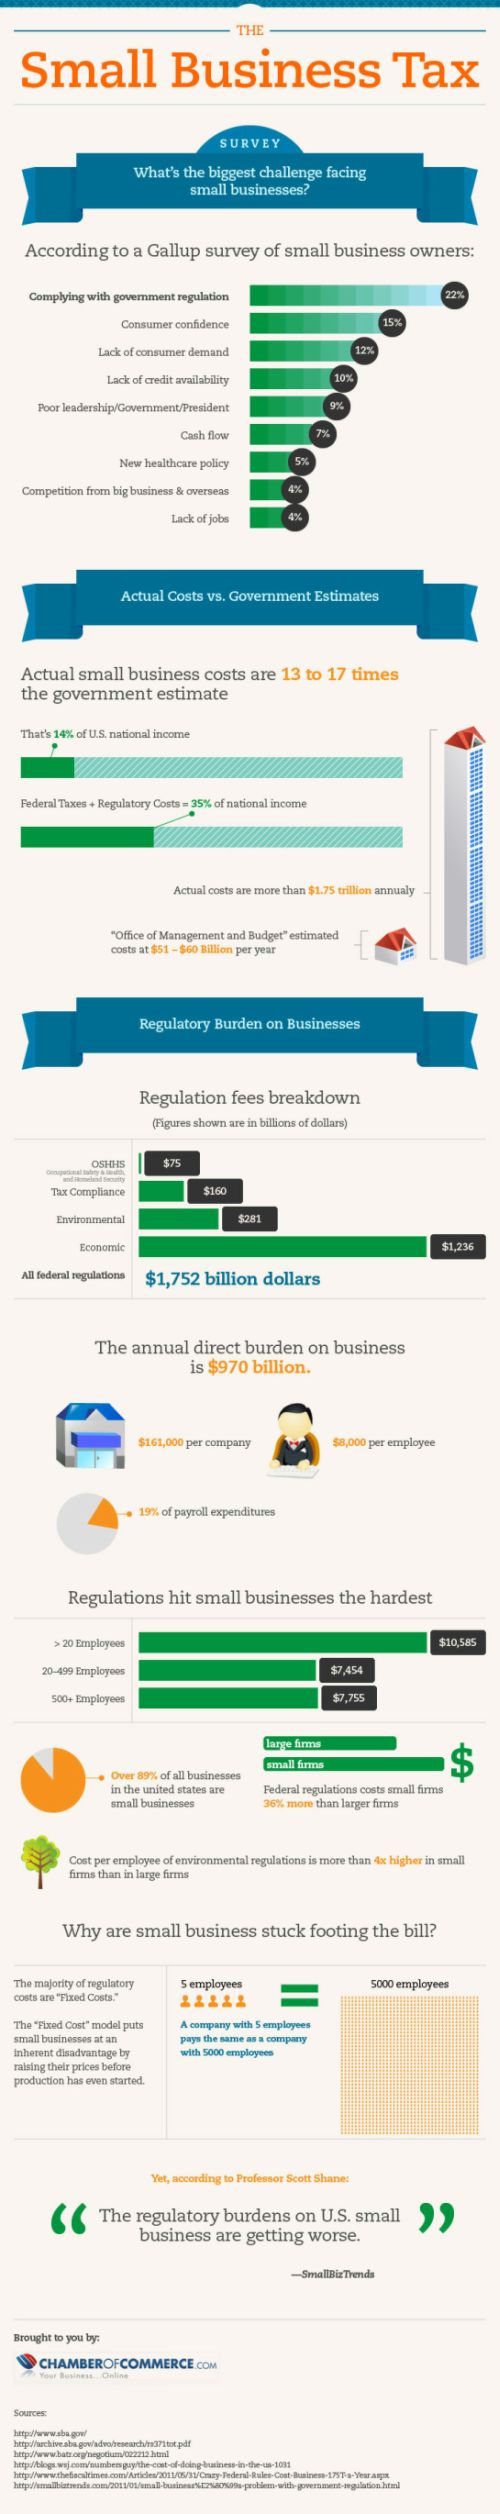 Small business regulatory burden infographic